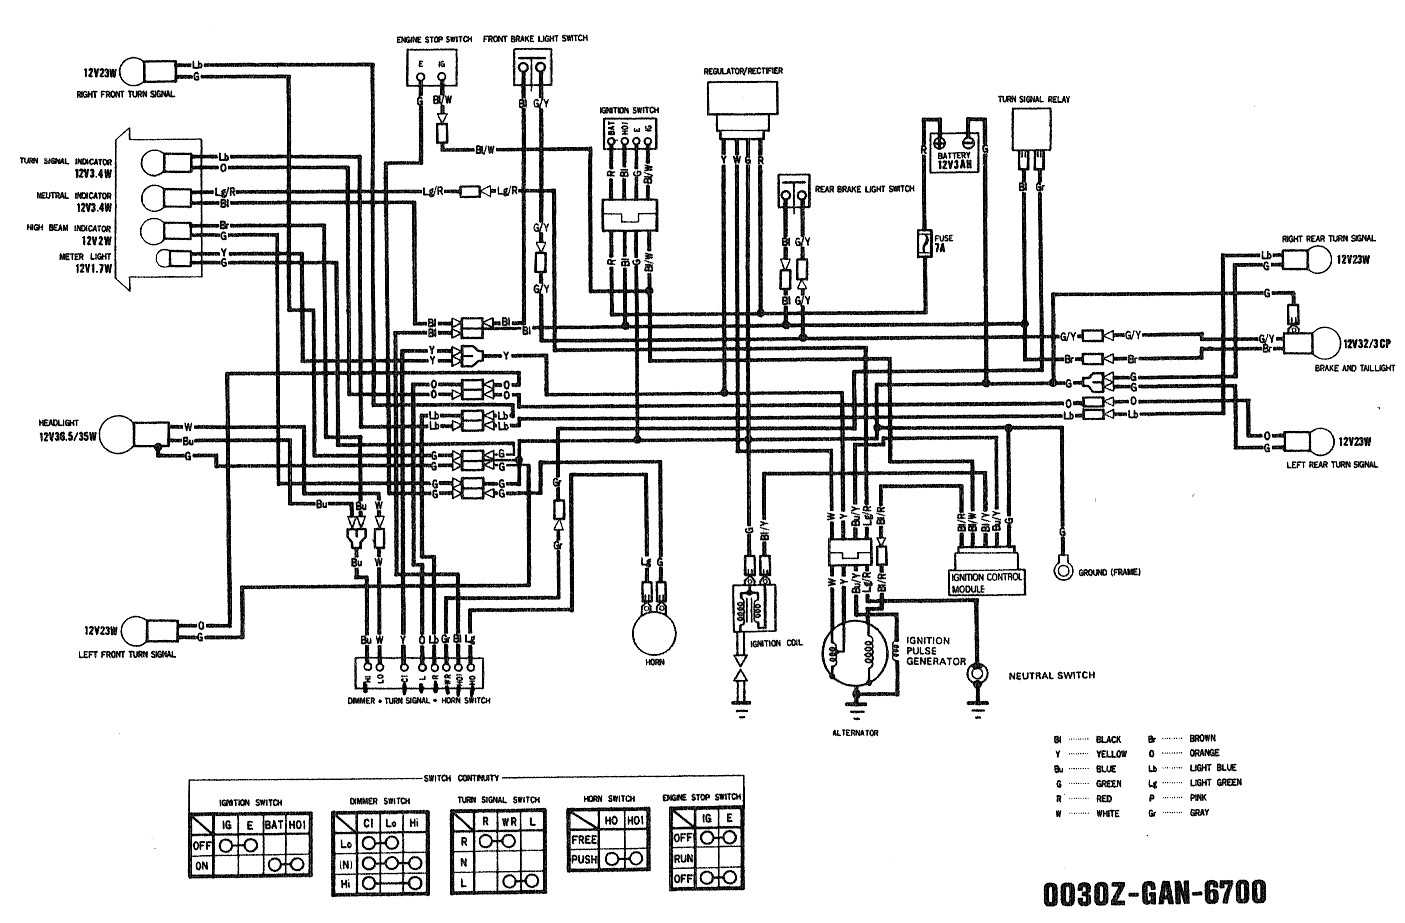 70 Volt Speaker Wiring Diagram Additionally 24V Trolling